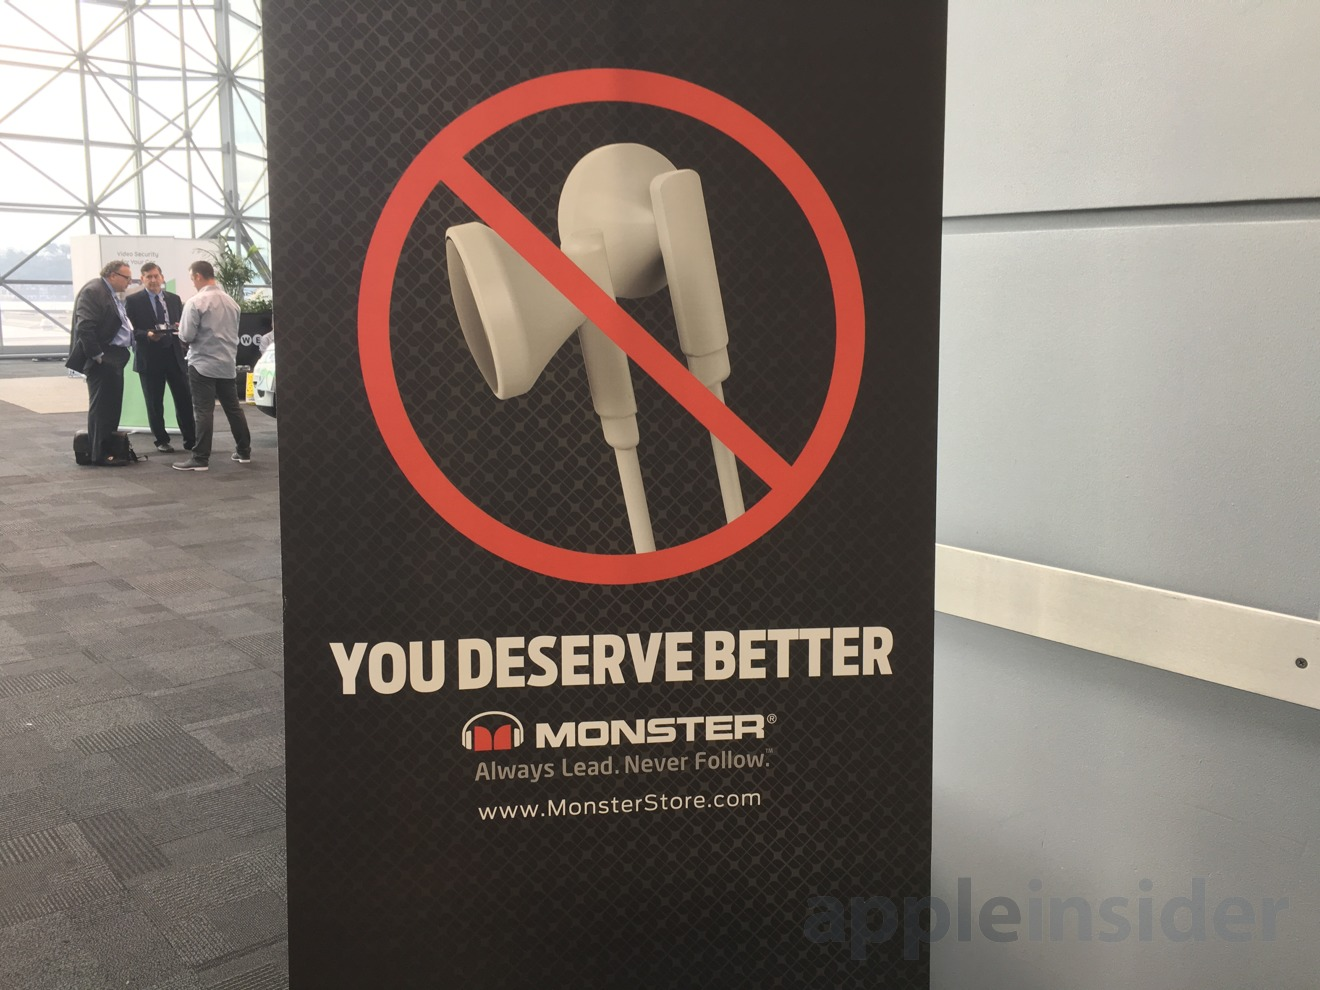 Monster's anti-Apple campaign